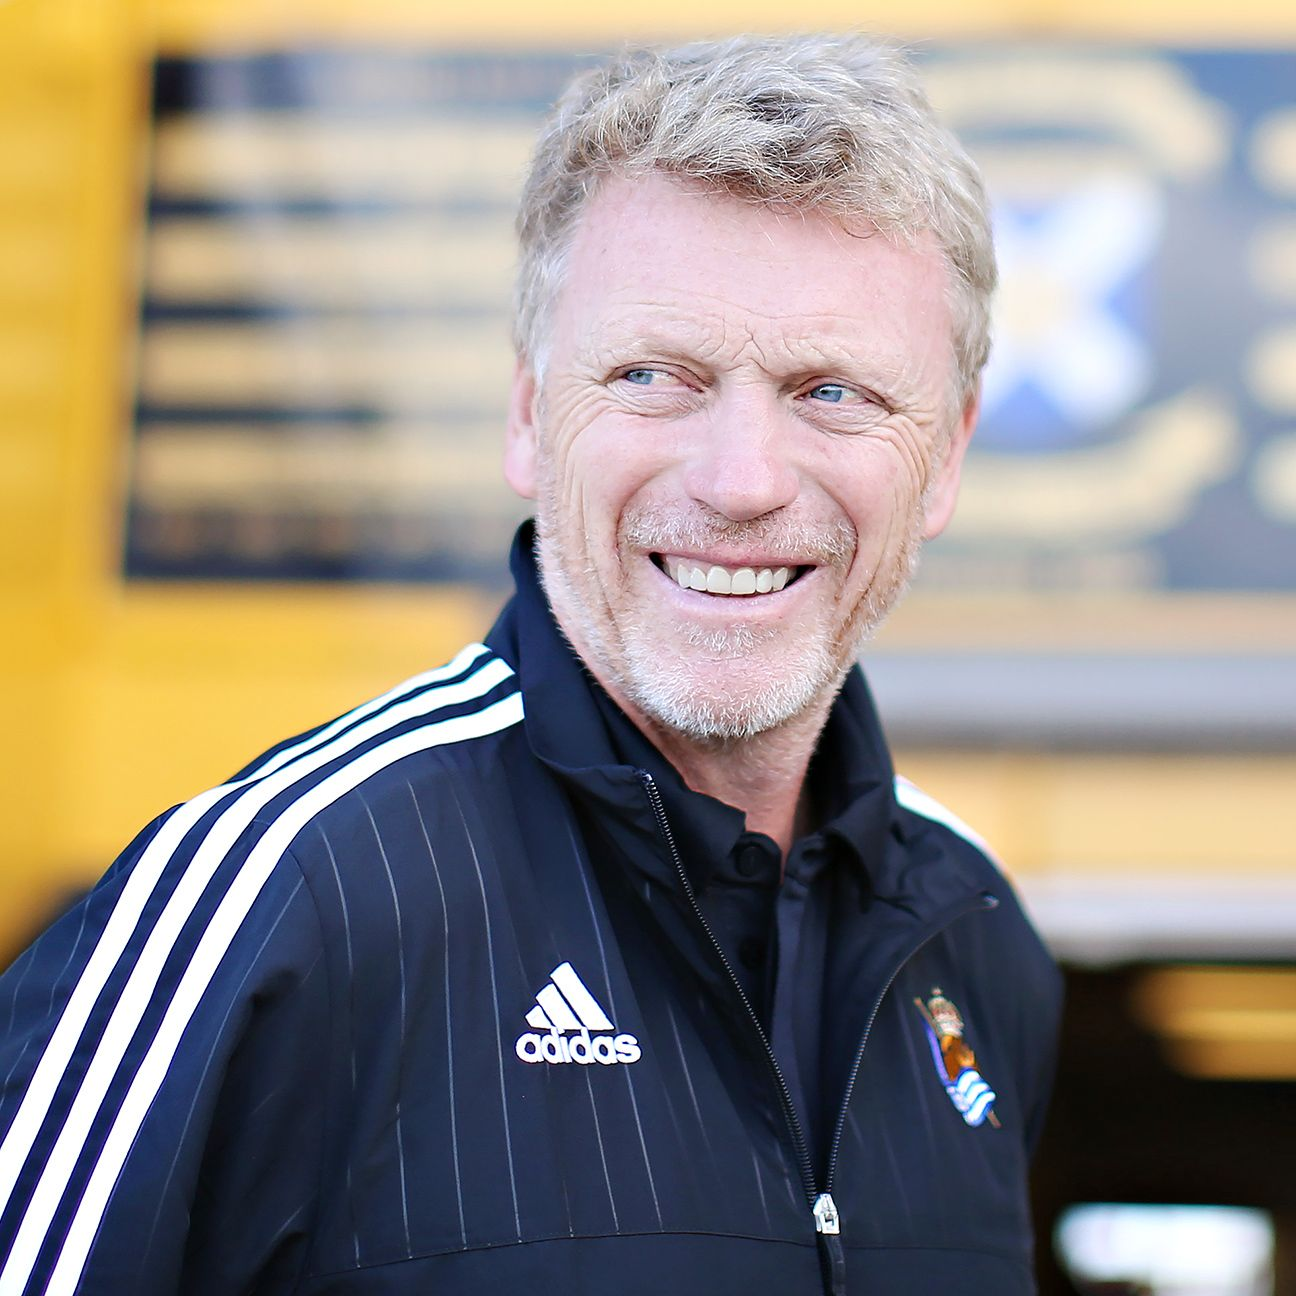 It appears that the David Moyes era at Real Sociedad is reaching its end.